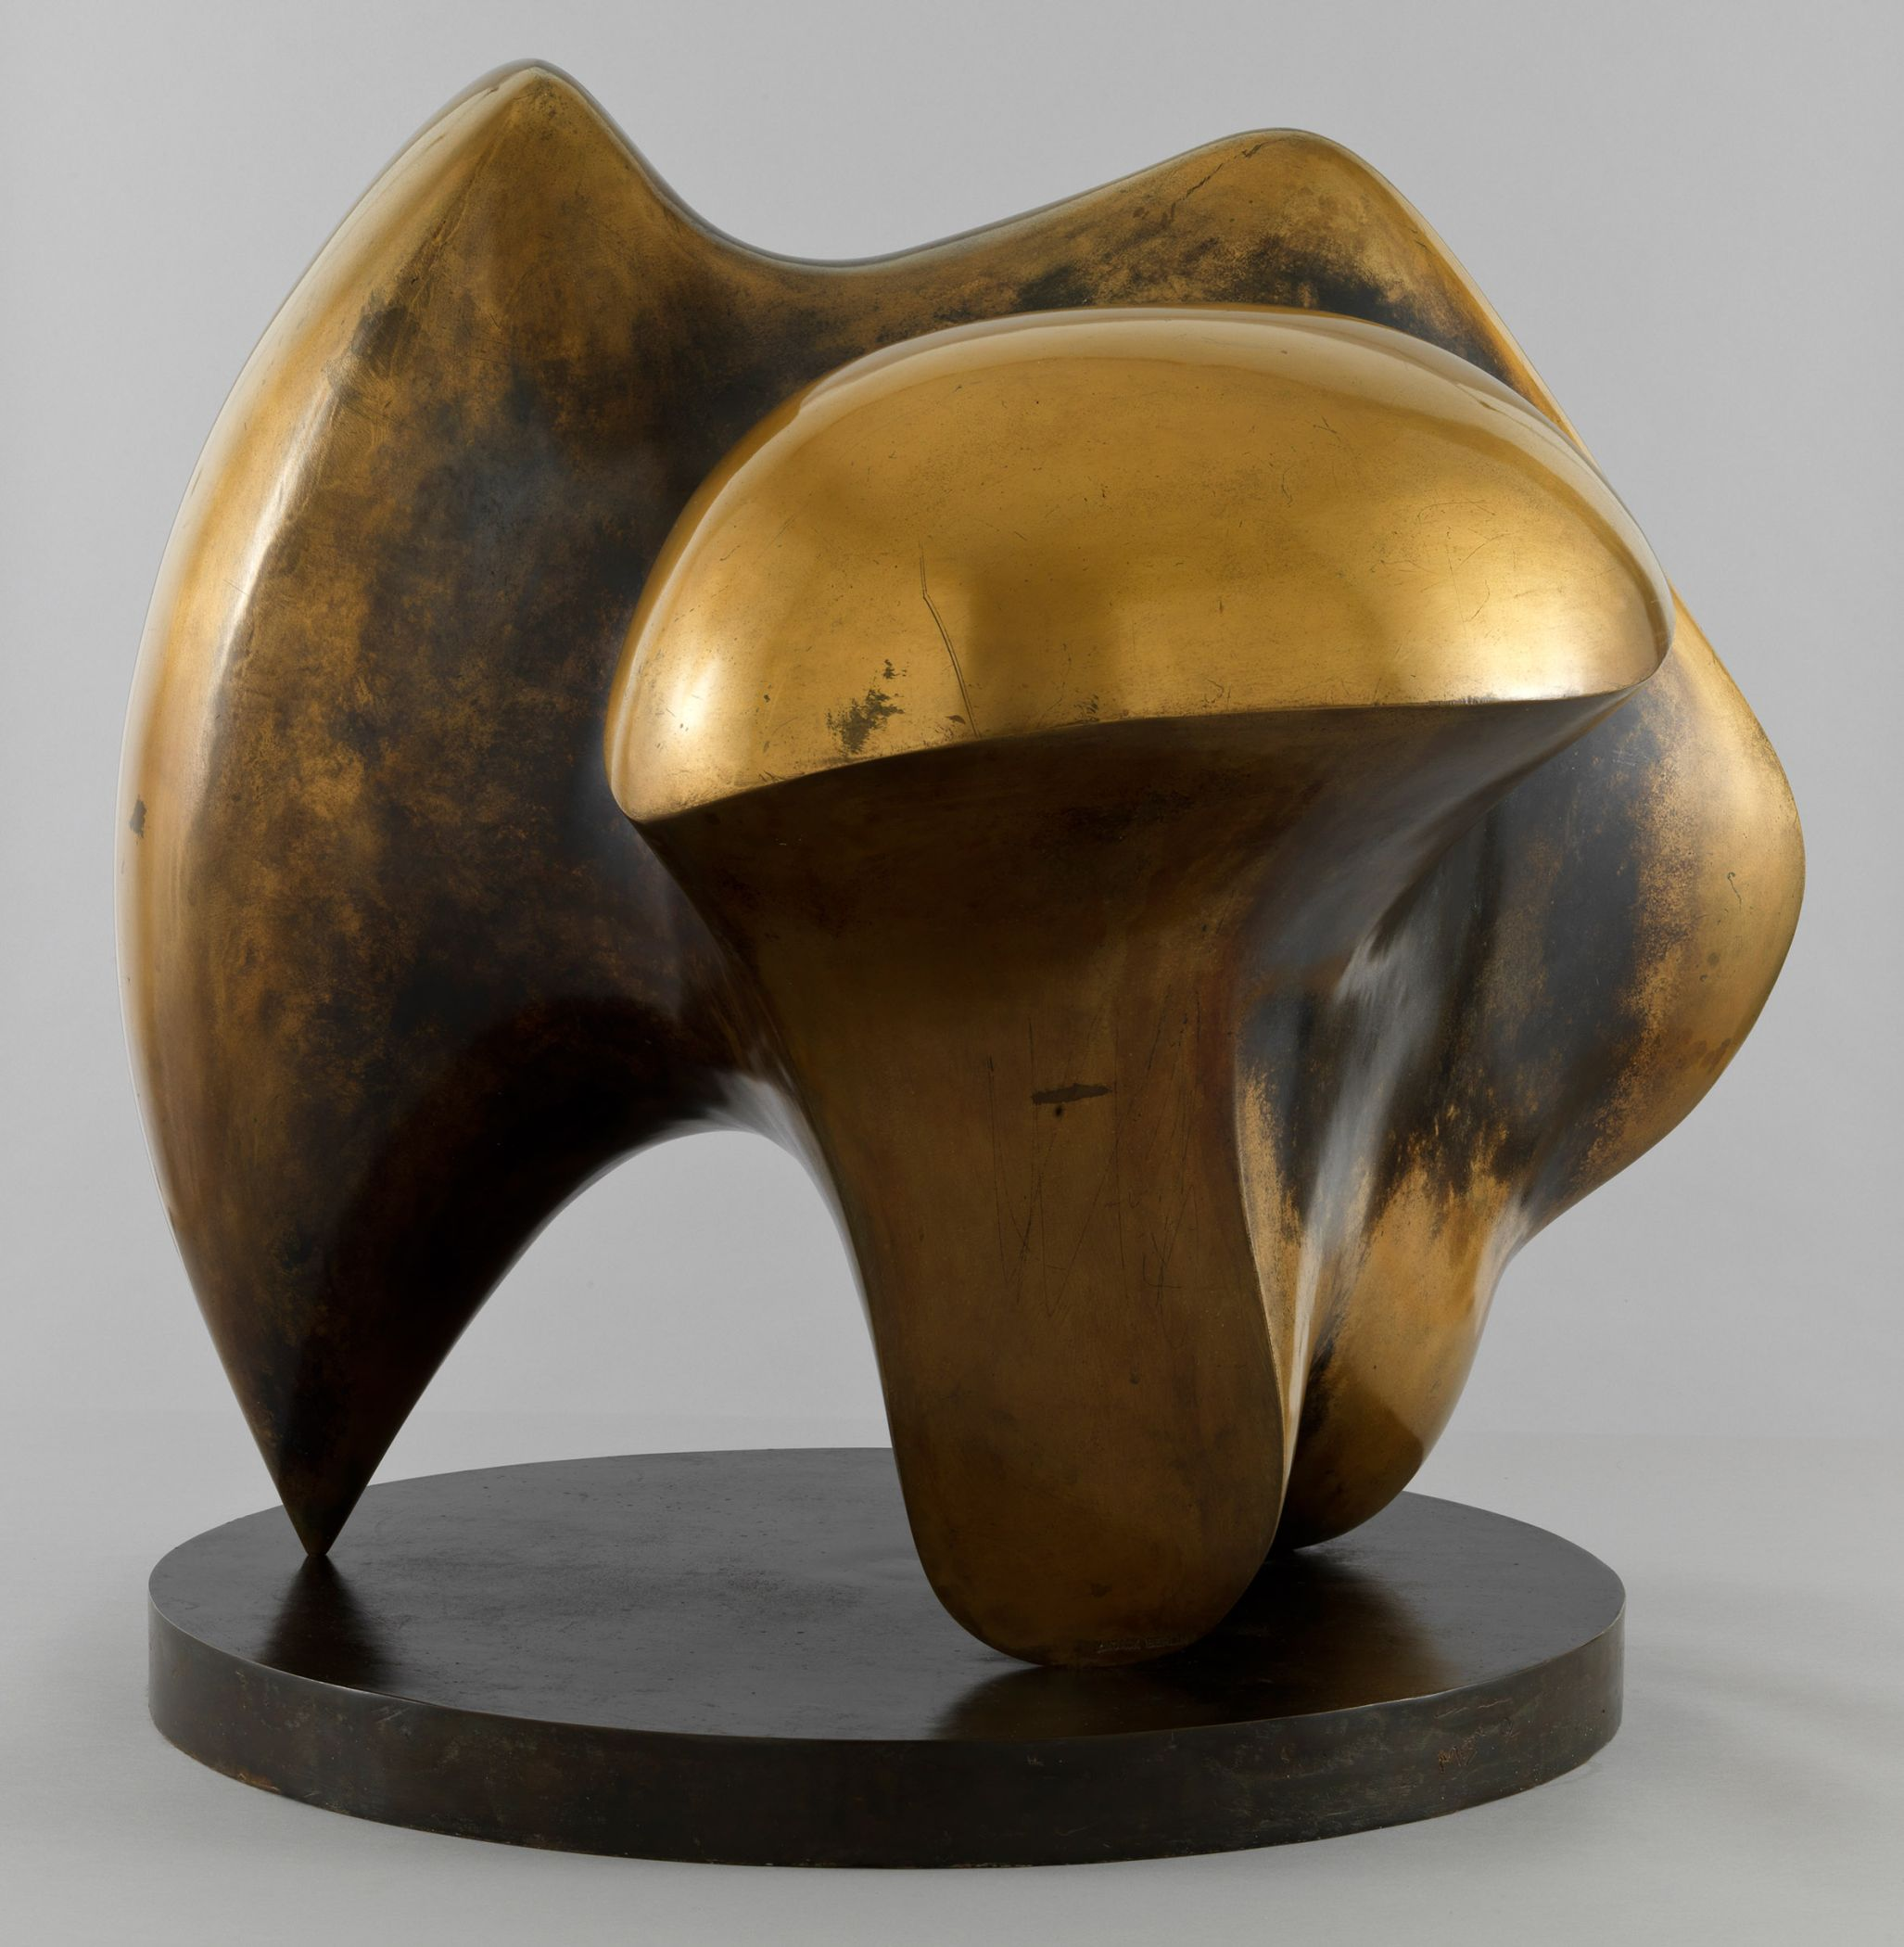 Henry Moore, Working Model for Three Way Piece No. 1: Points, 1964. Tate: Presented by the artist 1978 © Reproduced by permission of The Henry Moore Foundation. Foto: © Tate, London 2016